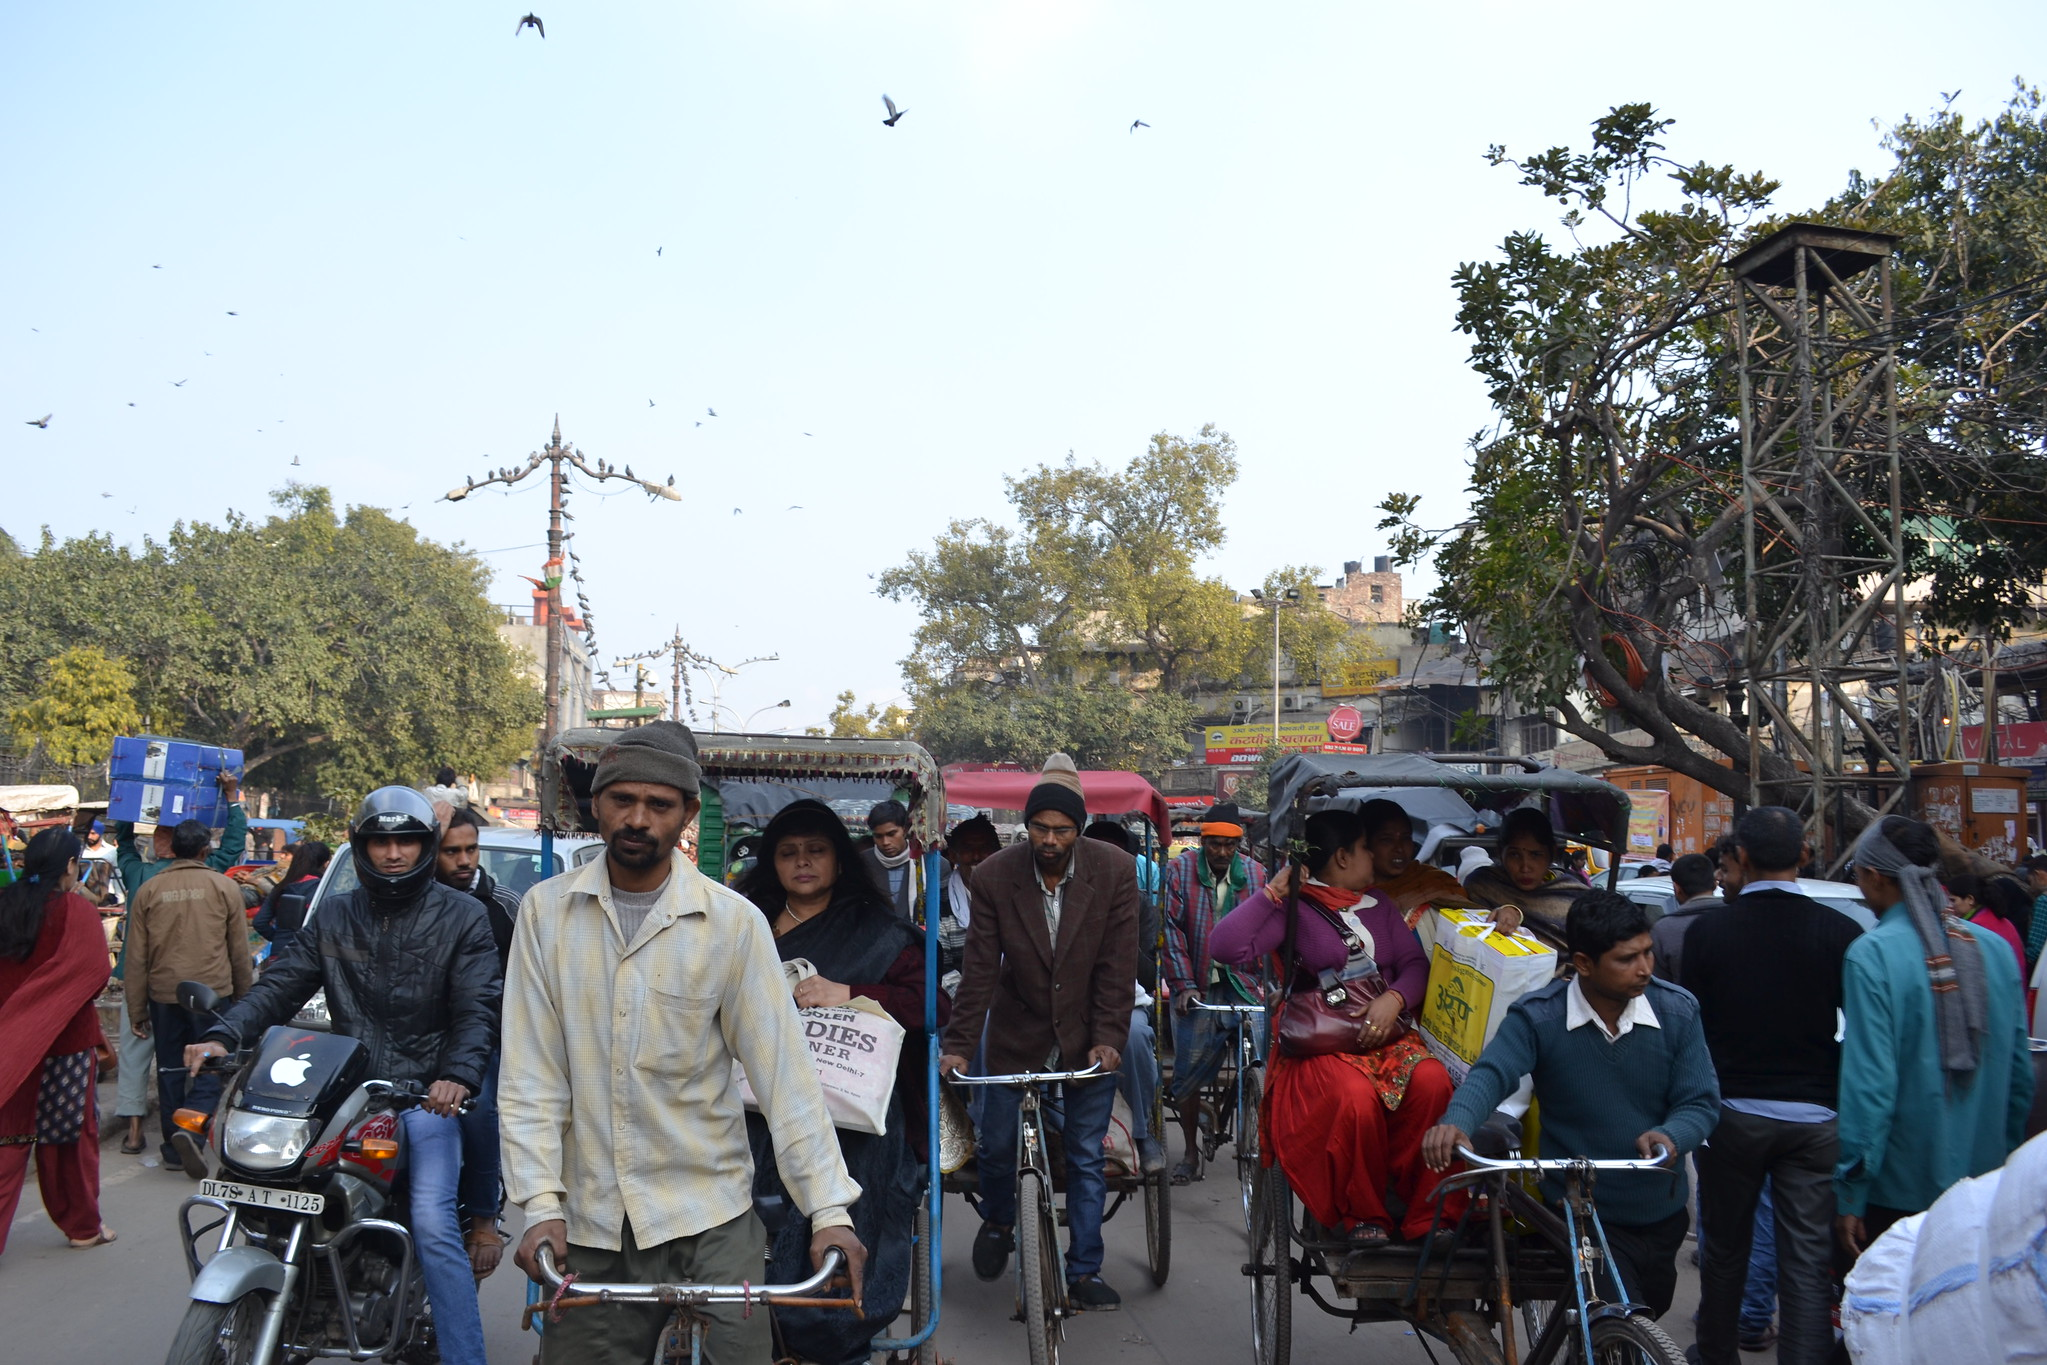 <p>Delhi\'s informal paratransit providers, including low-emissions and shared rides like pedicabs and minibuses, are part of the solution to the city\'s air quality problems. Photo by James Anderson/WRI.</p>